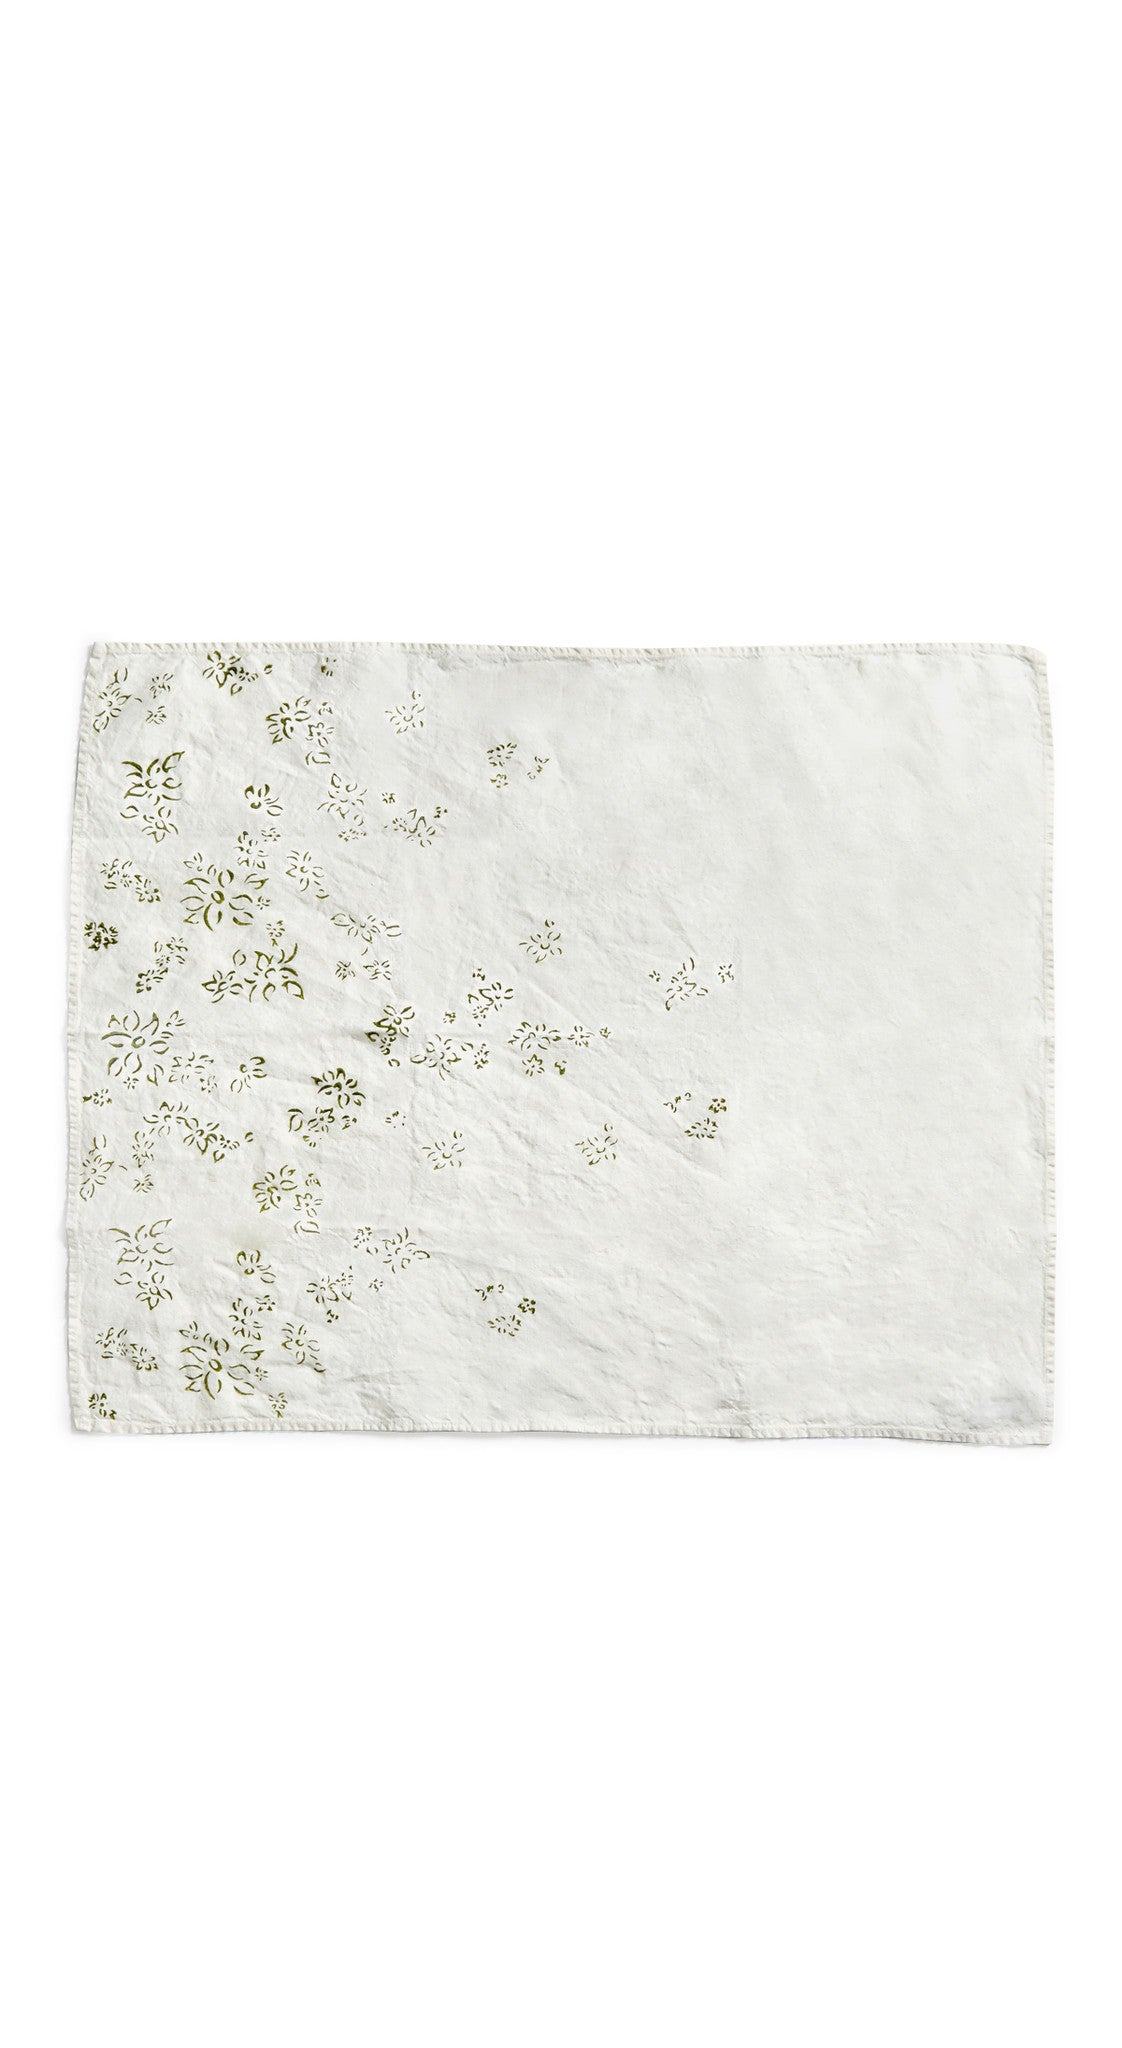 Bernadette's Hand Stamped Falling Flower Linen Tea Towel in Avocado Green